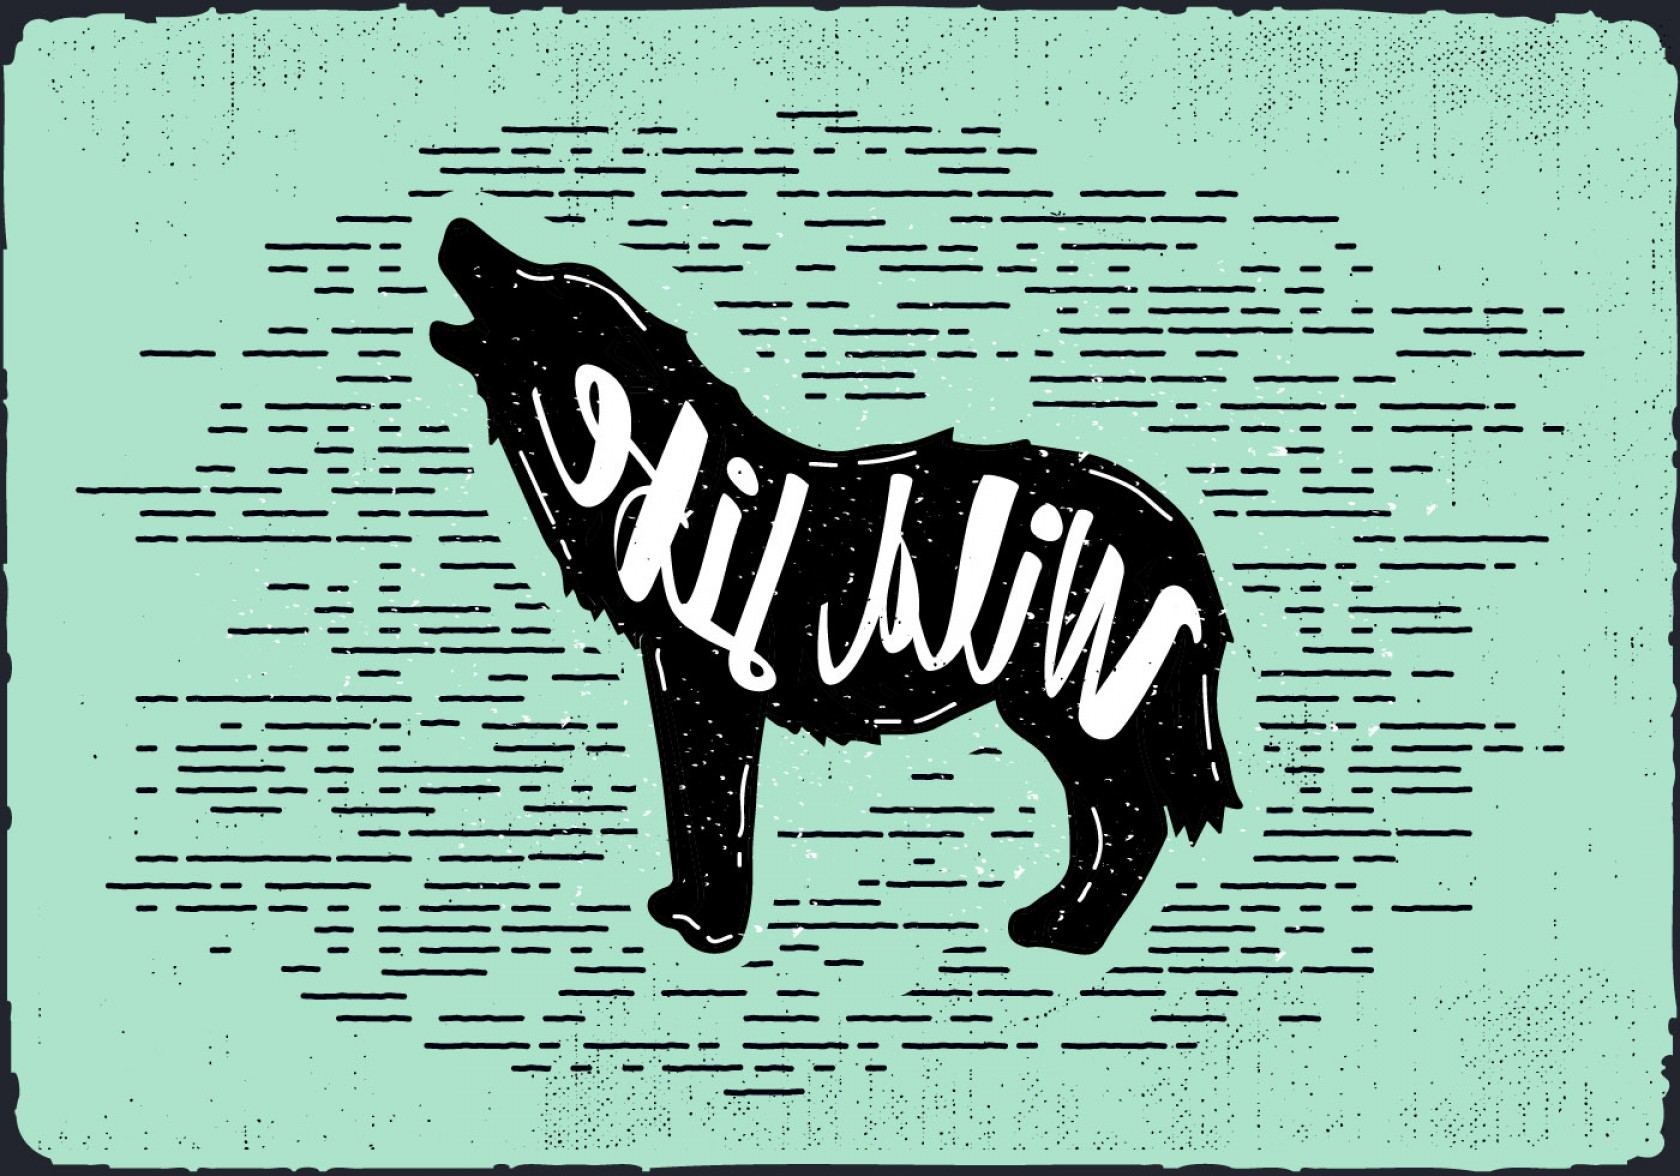 Calm Wolf Vector: Vector Wolf Silhouette Illustration With Typography